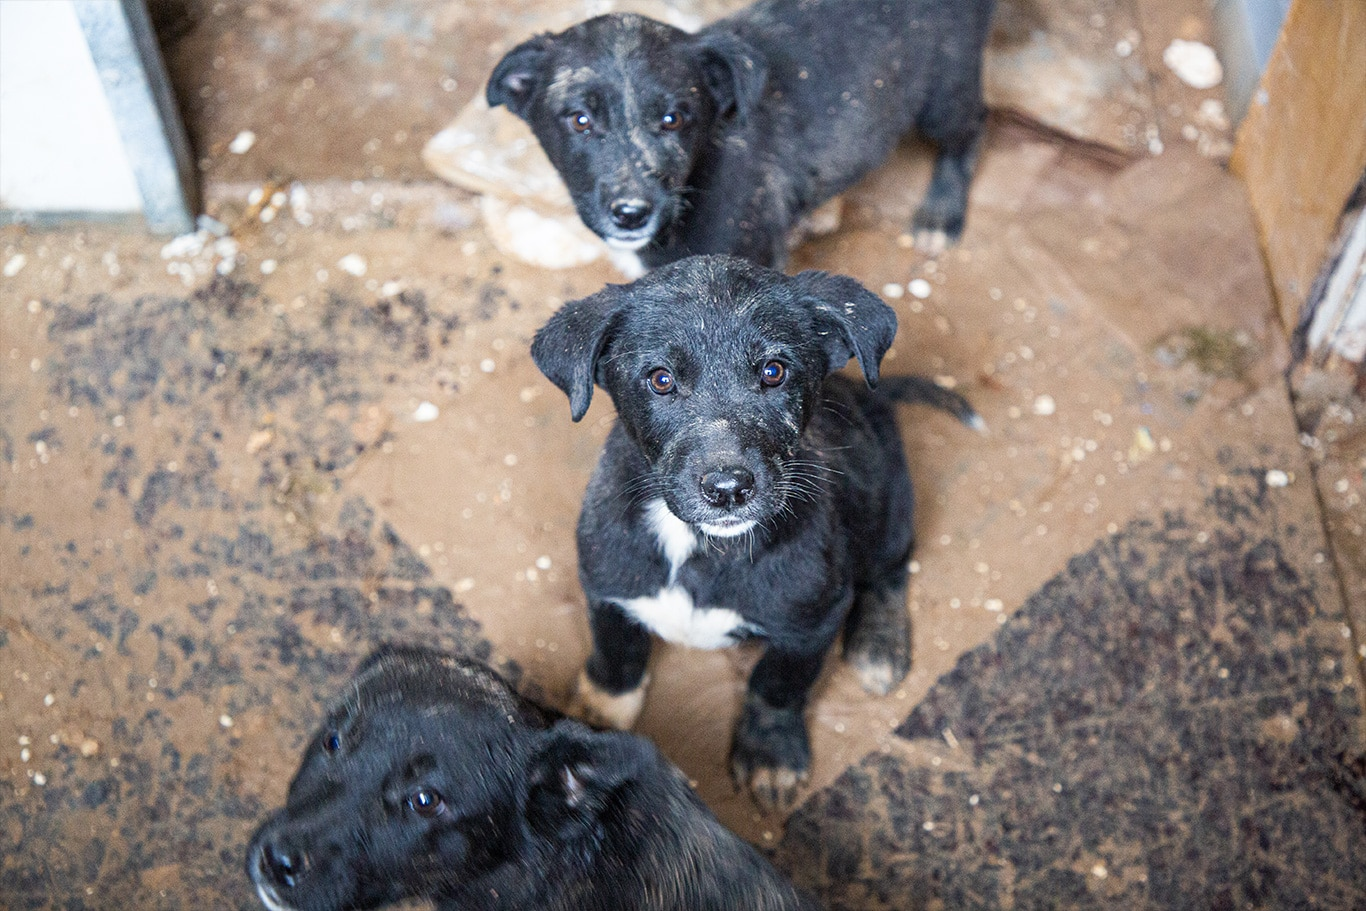 Cassandra and her six defenseless puppies DESPERATELY need help! 3